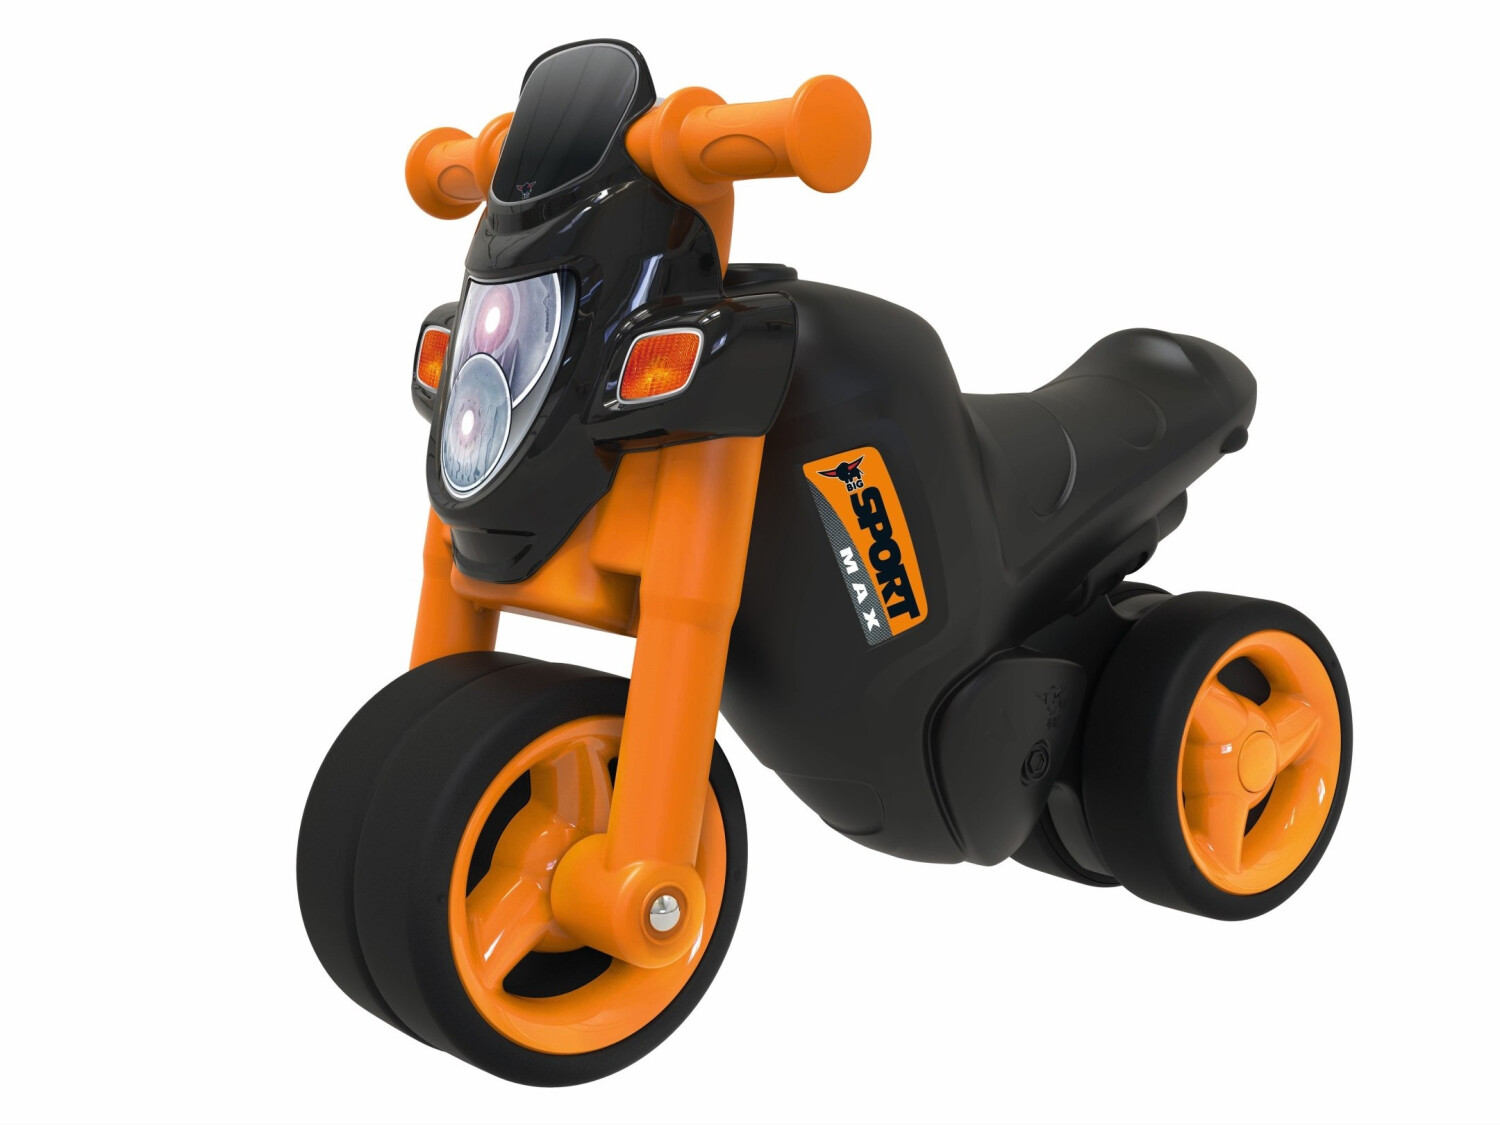 Big Sport-Bike schwarz-orange (800056361)